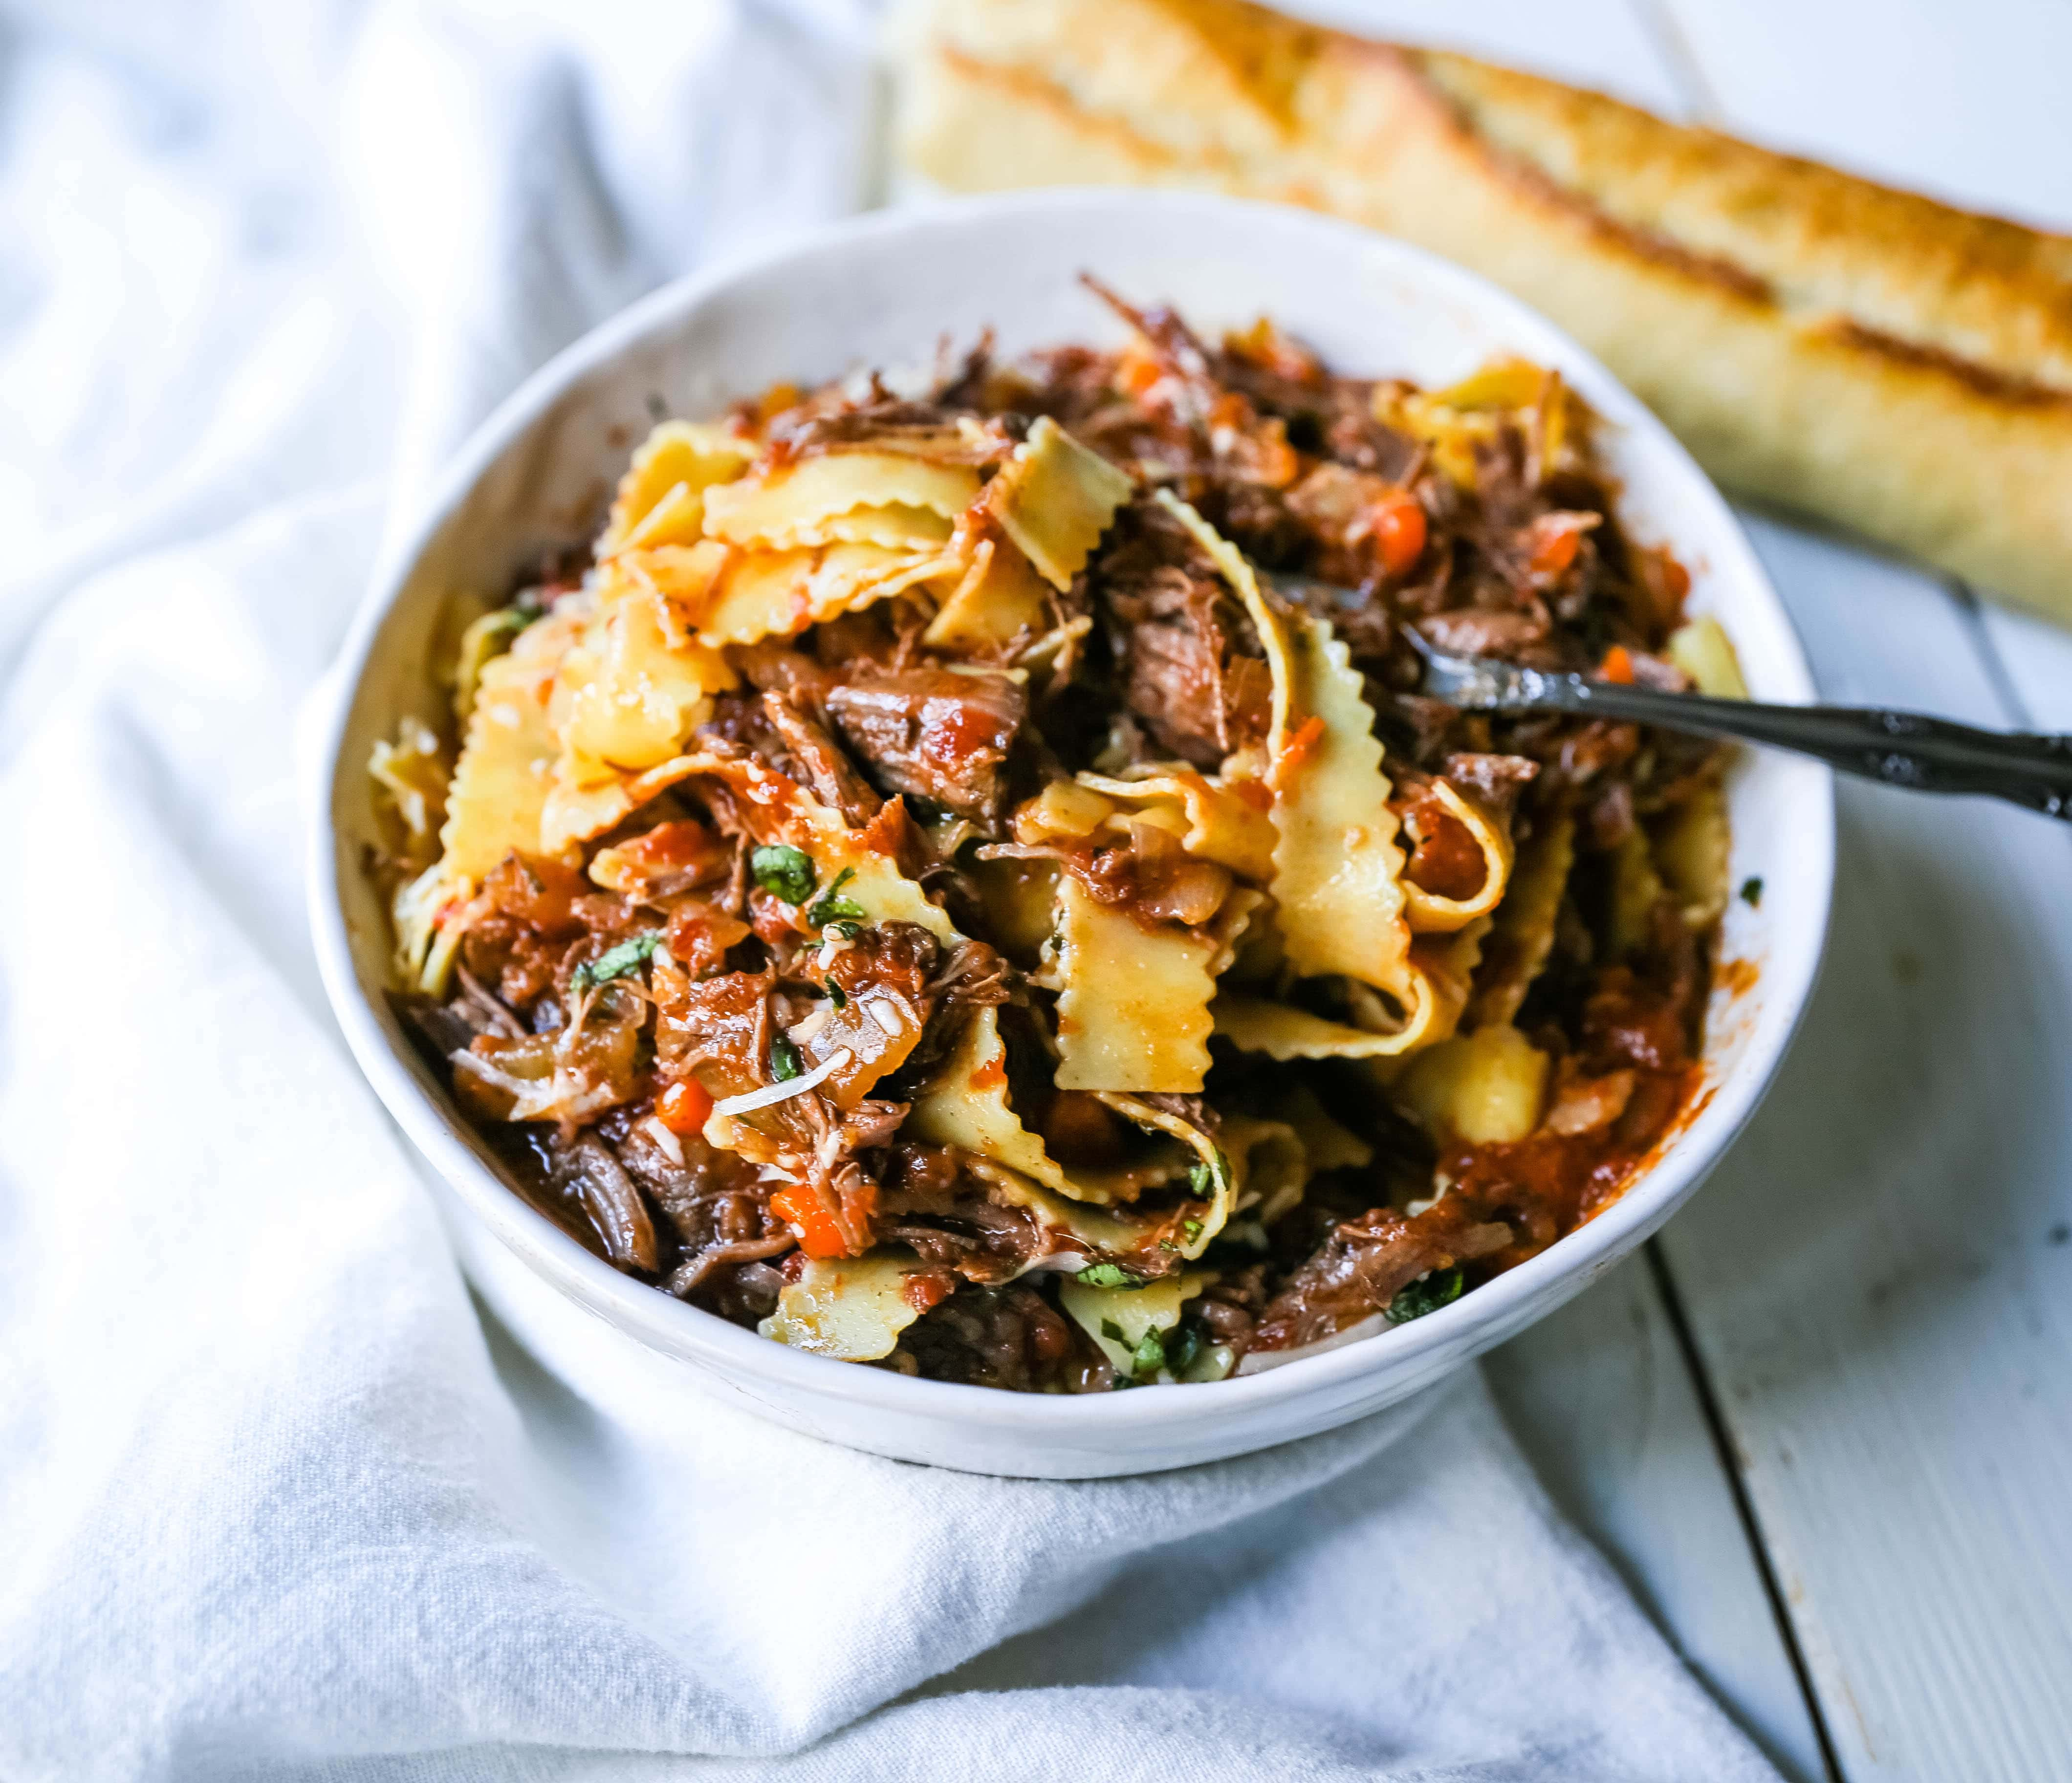 Sunday Slow Cooker Beef Ragu. Authentic Italian Beef Ragu. The ultimate comfort food! A big bowl of slow cooked, braised beef in a rich, robust tomato sauce tossed with pasta. I guarantee that you will go back for seconds! www.modernhoney.com #slowcooker #beefragu #italianfood #italian